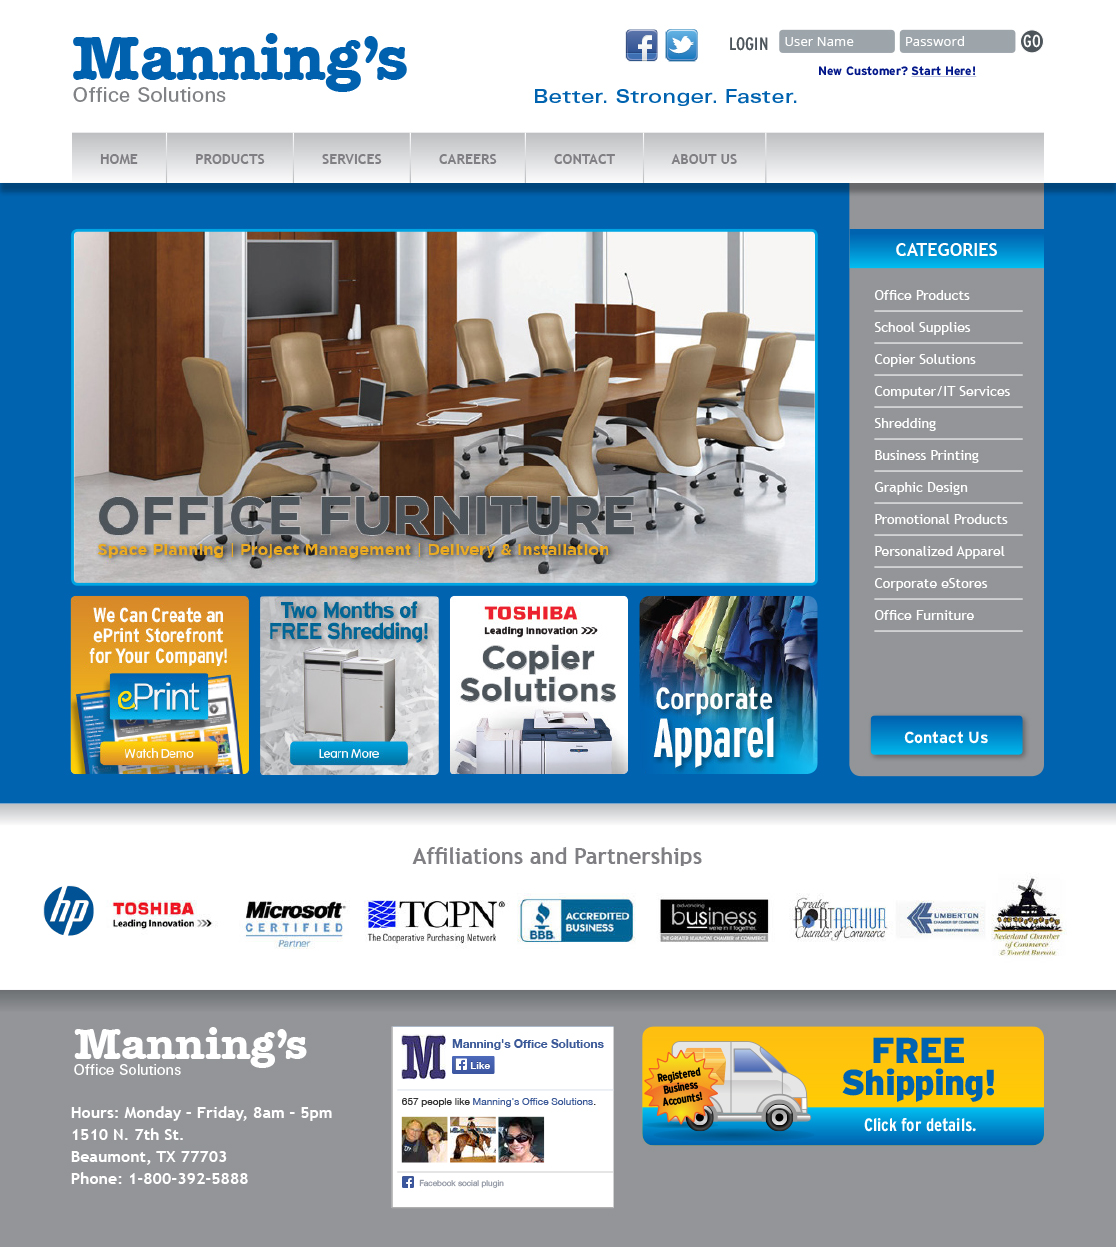 Manning Office Solutions Website